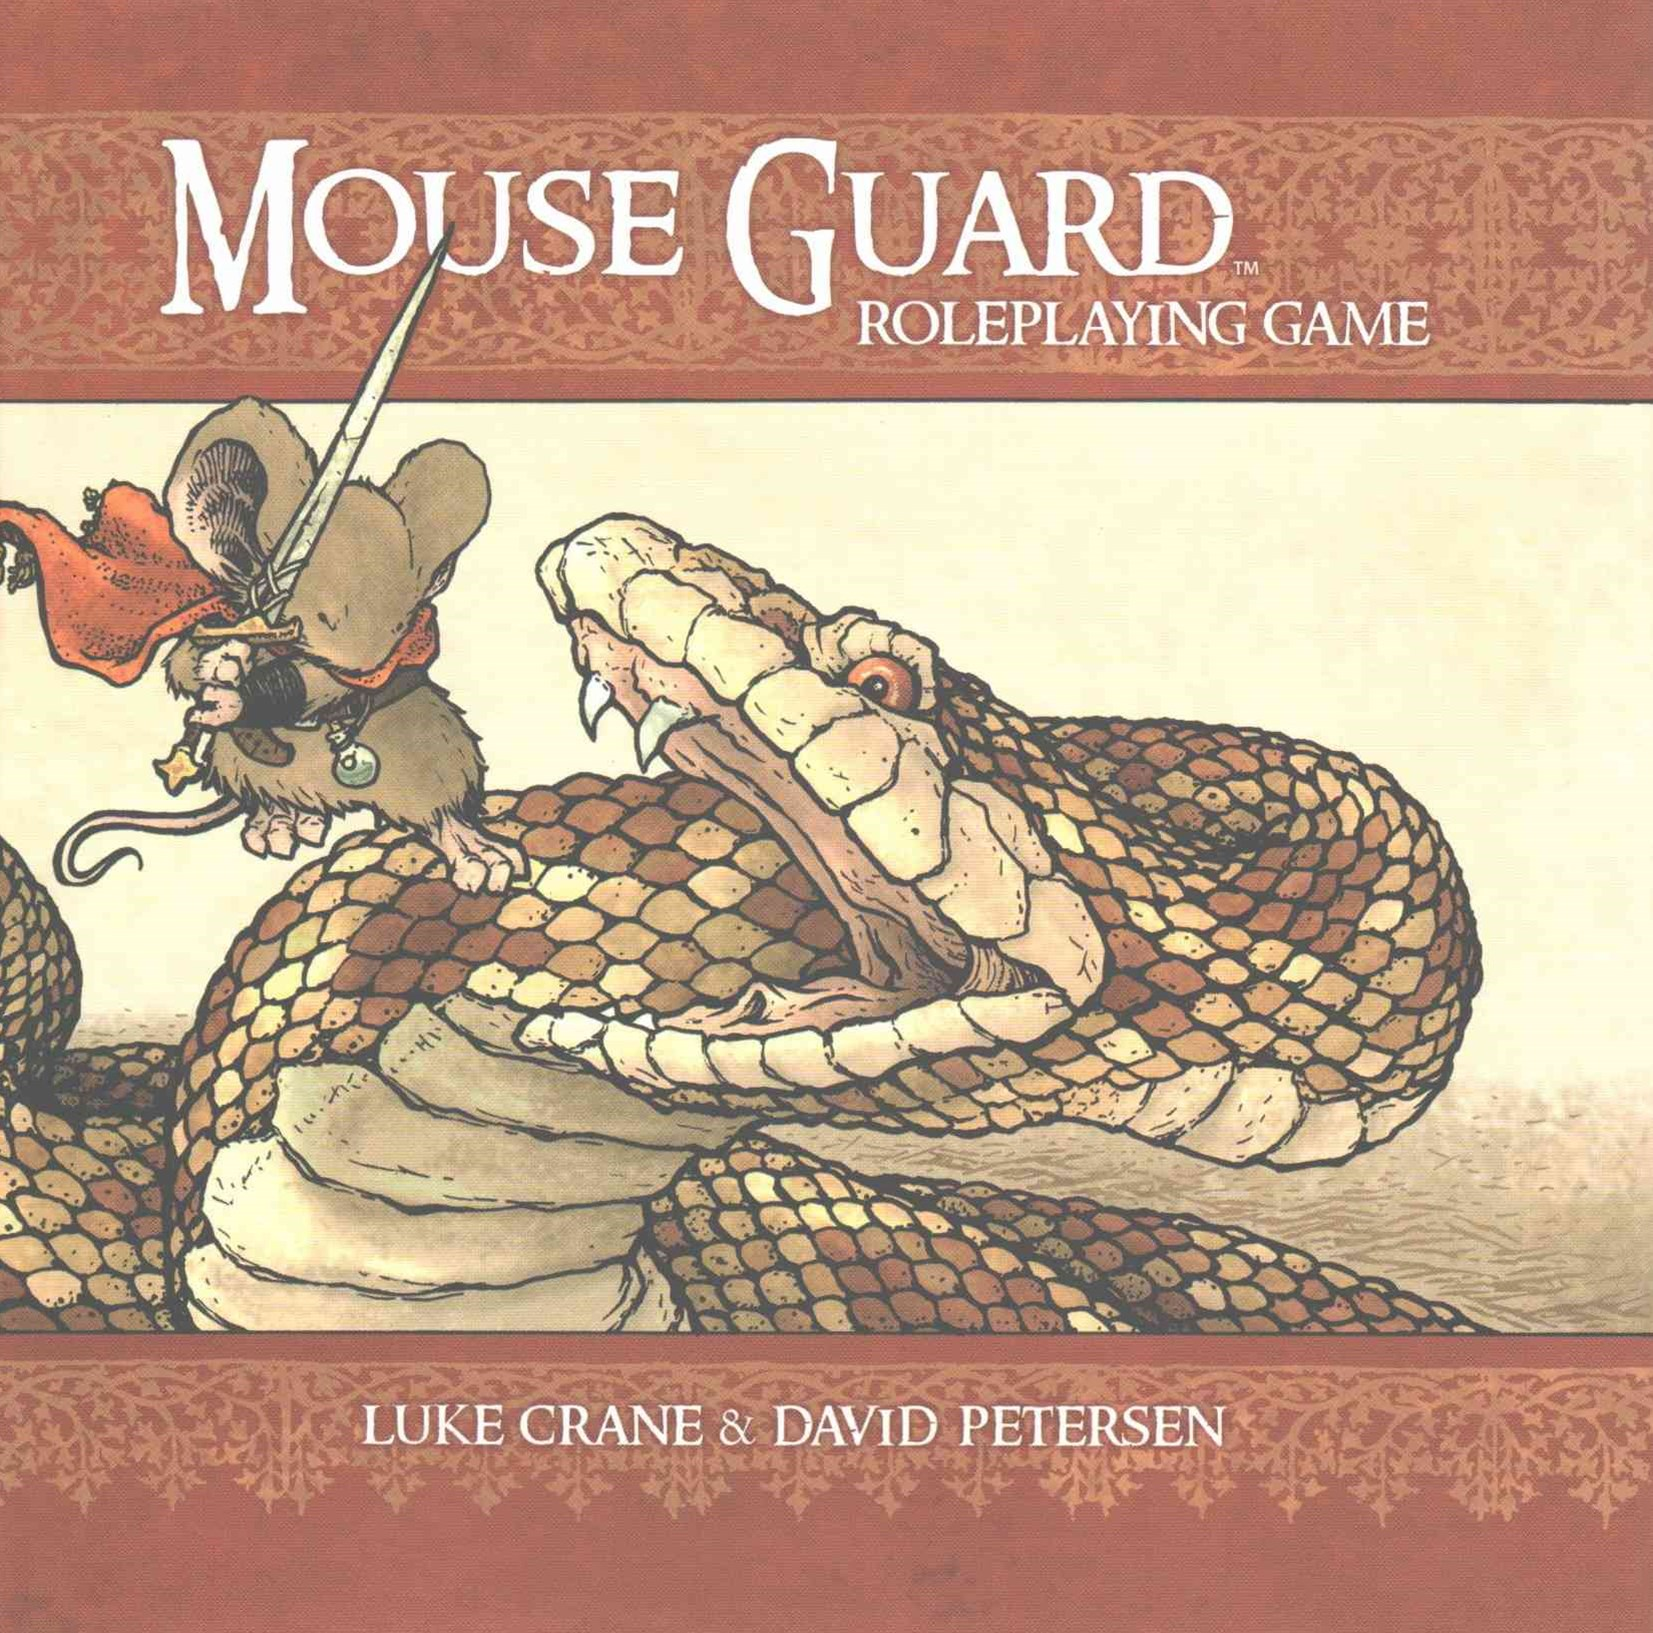 Mouse Guard Roleplaying Game, 2nd Ed